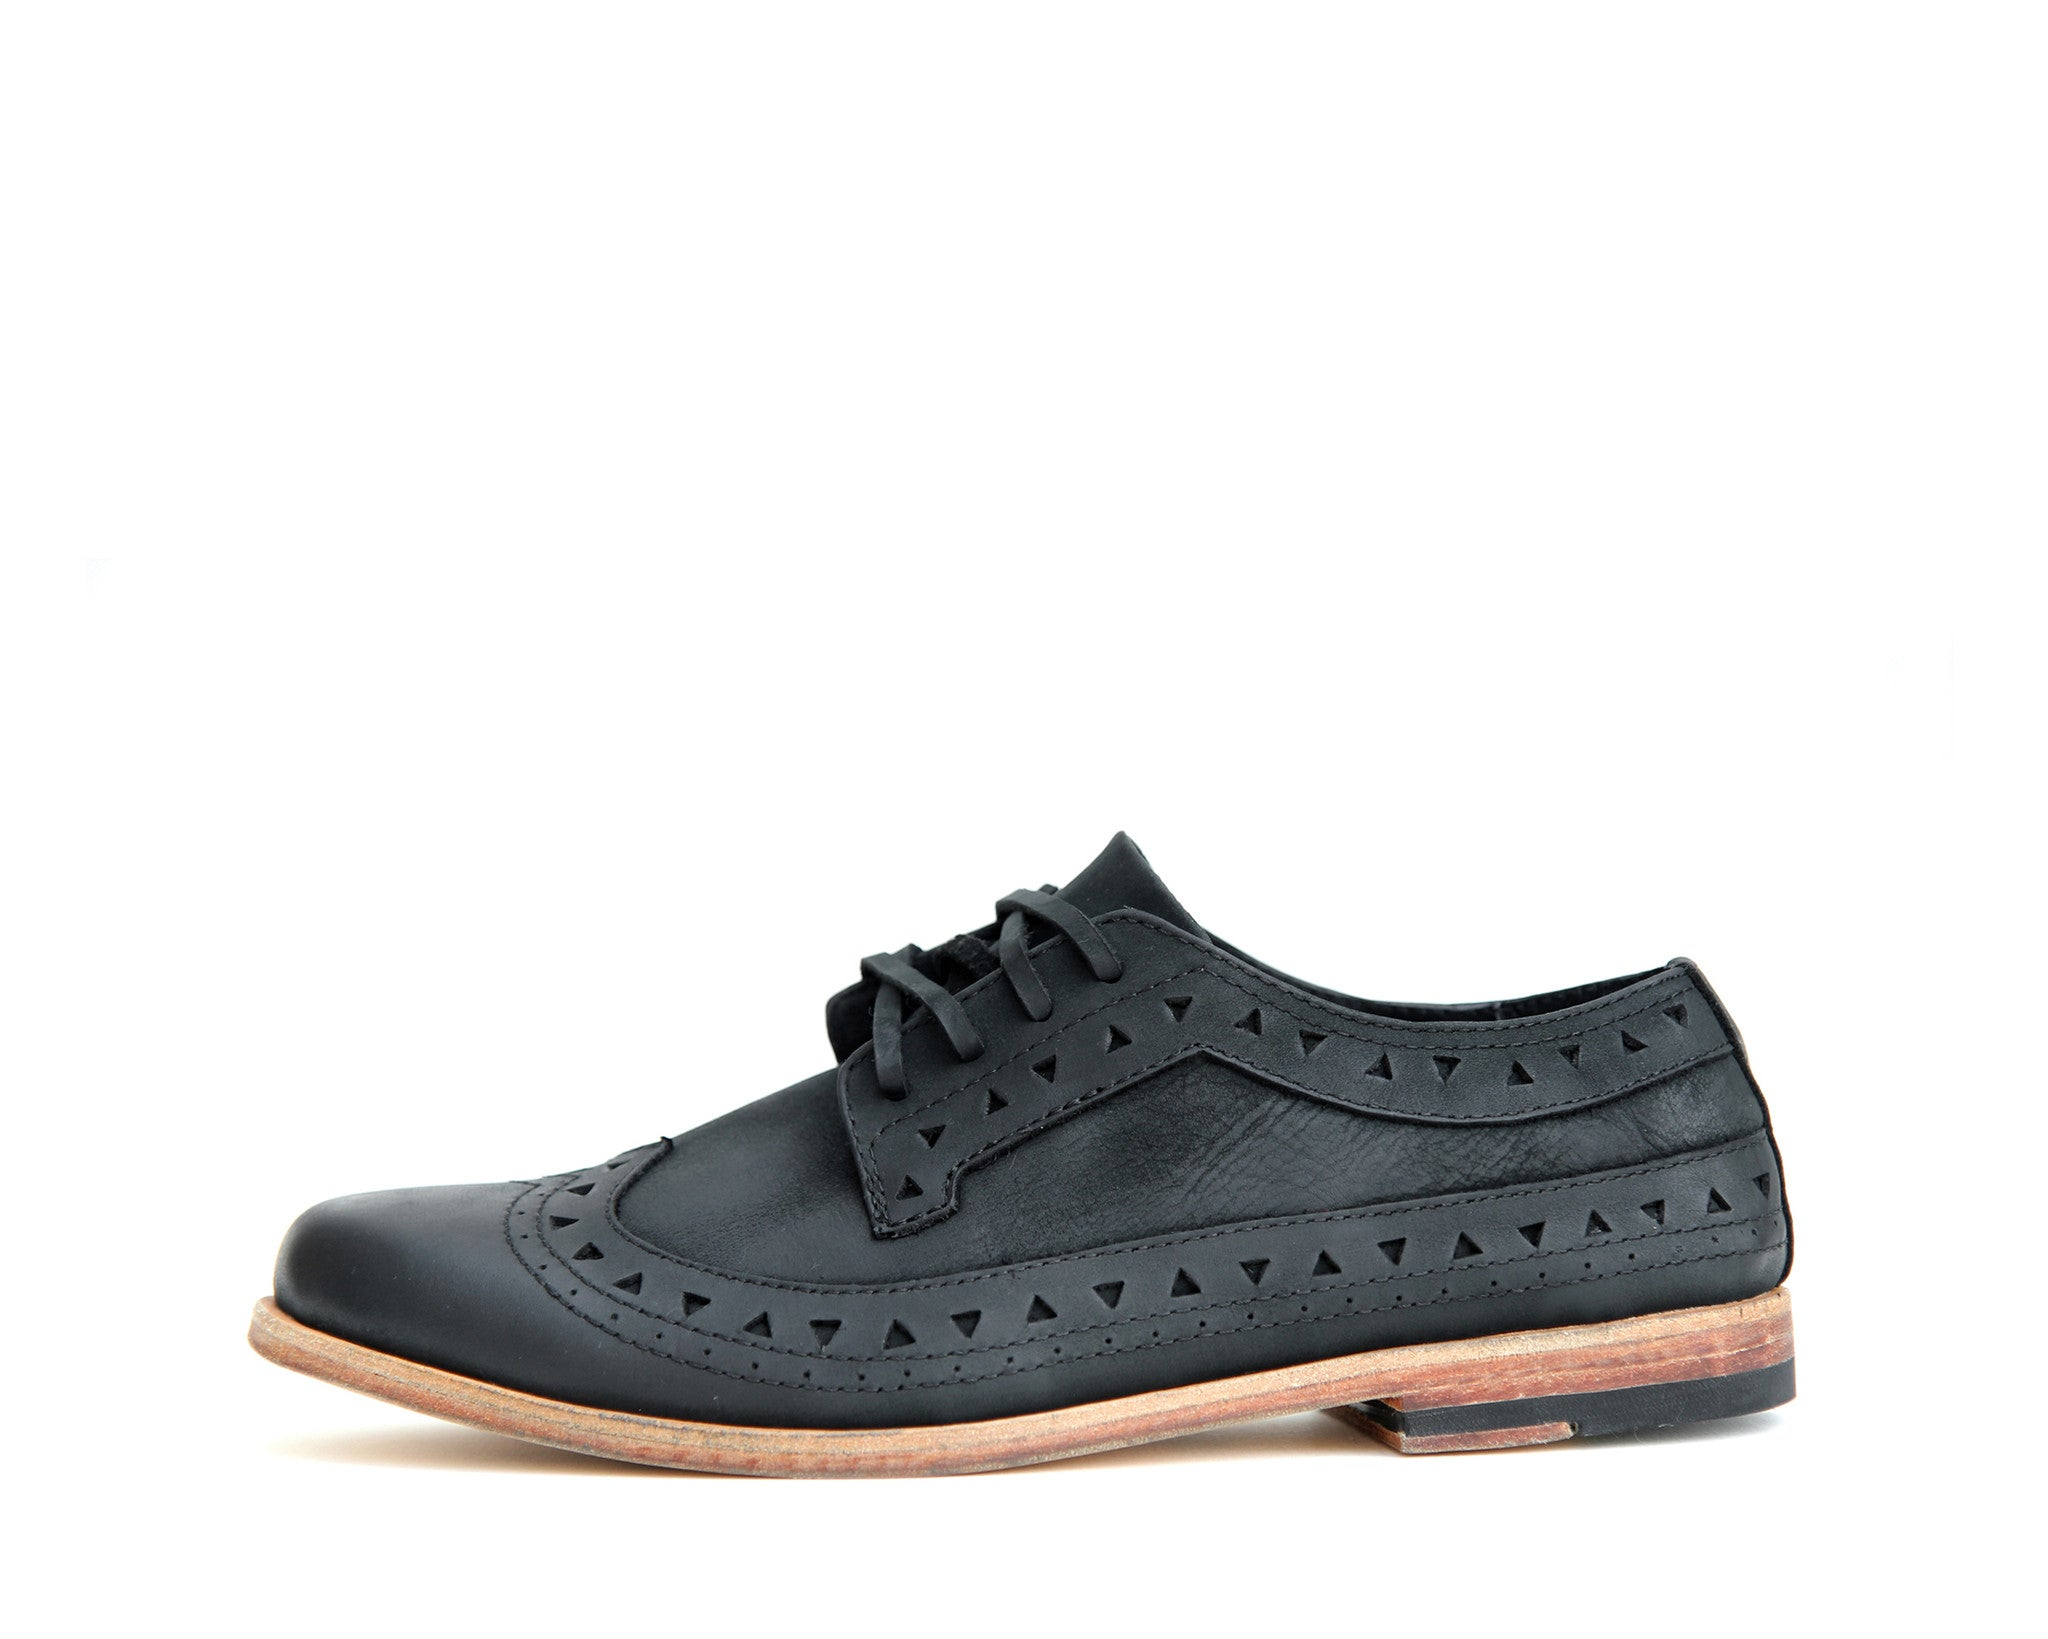 Men's Footwear: Bobby - Black - Leather sole | Mere